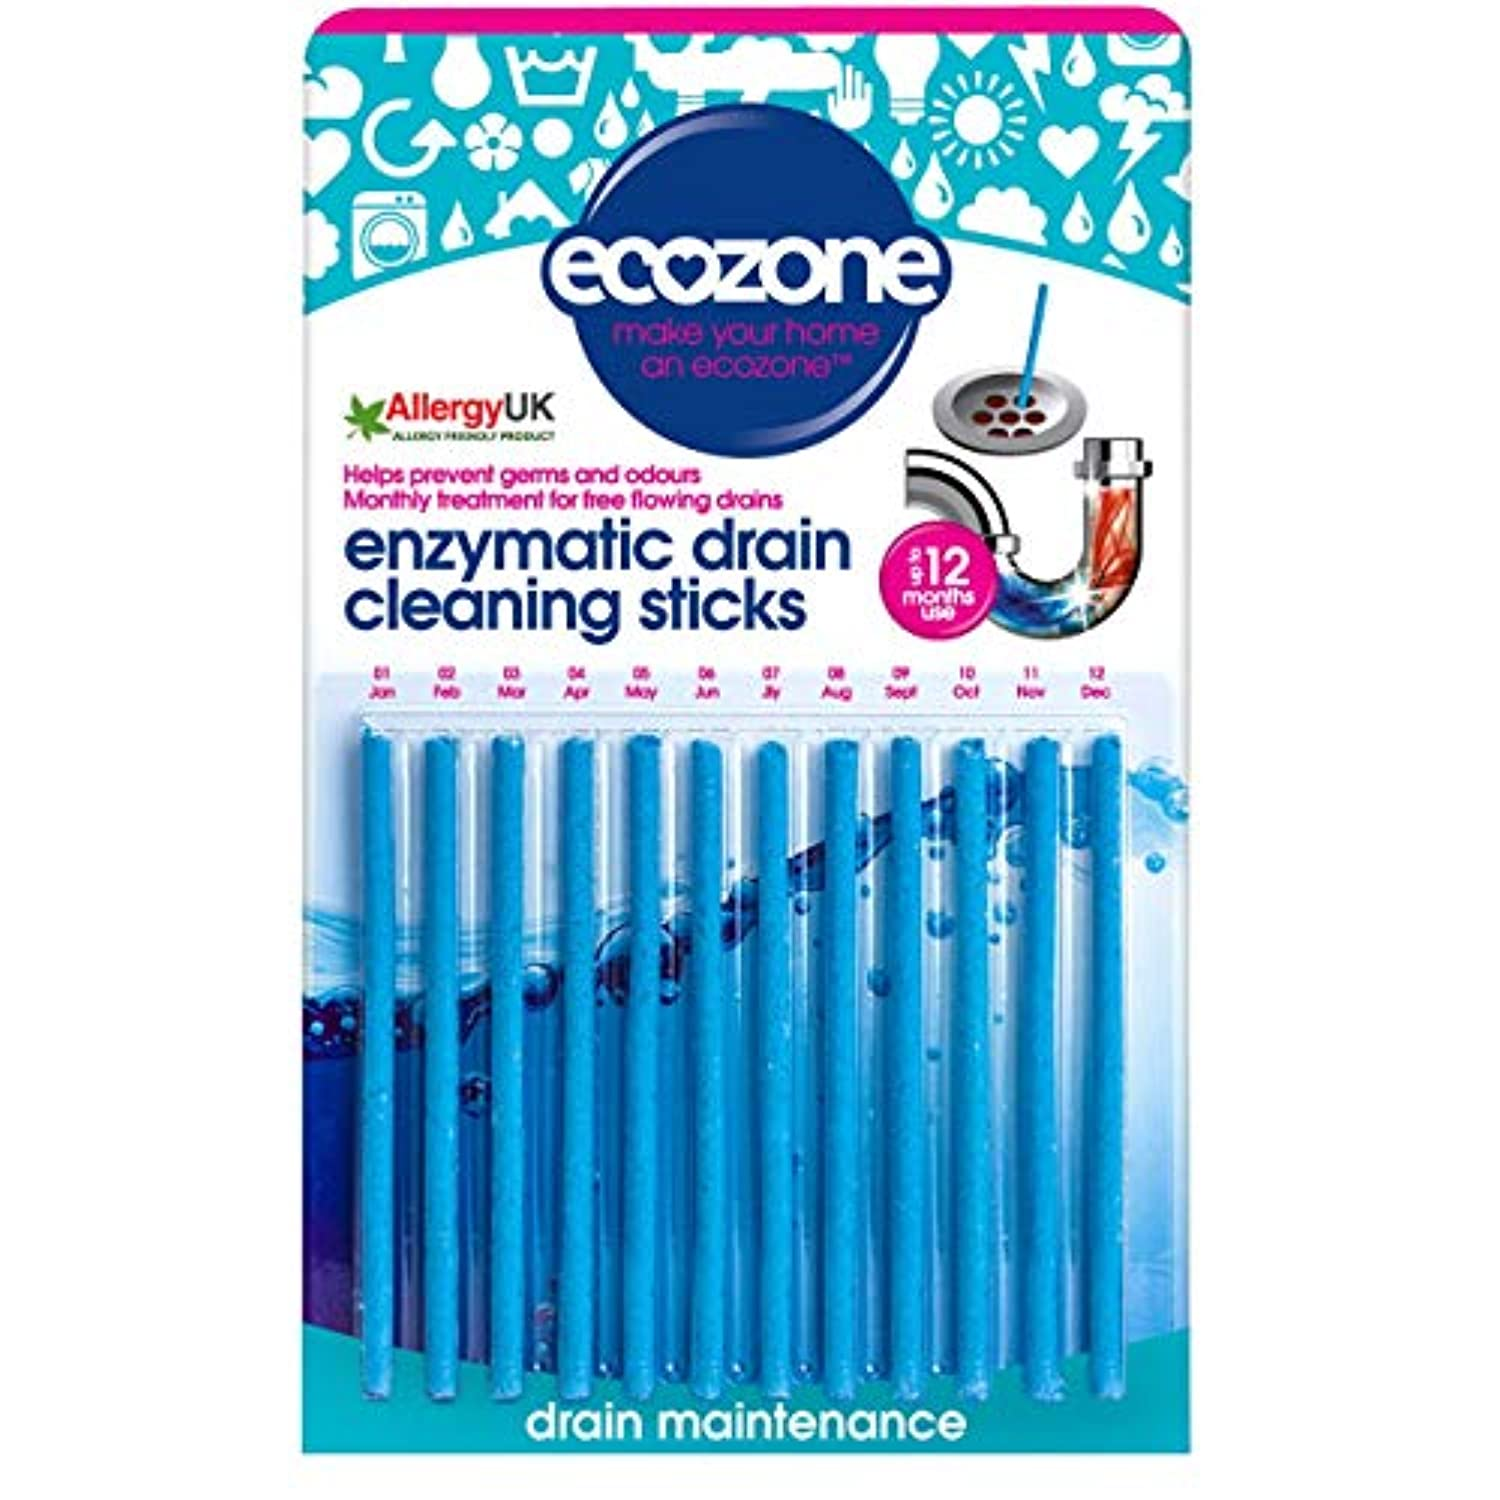 Ecozone Enzymatic Drain Sticks - Helps to Prevent Blockages Forming - 1 Year of Protection Per Packet by Ecozone